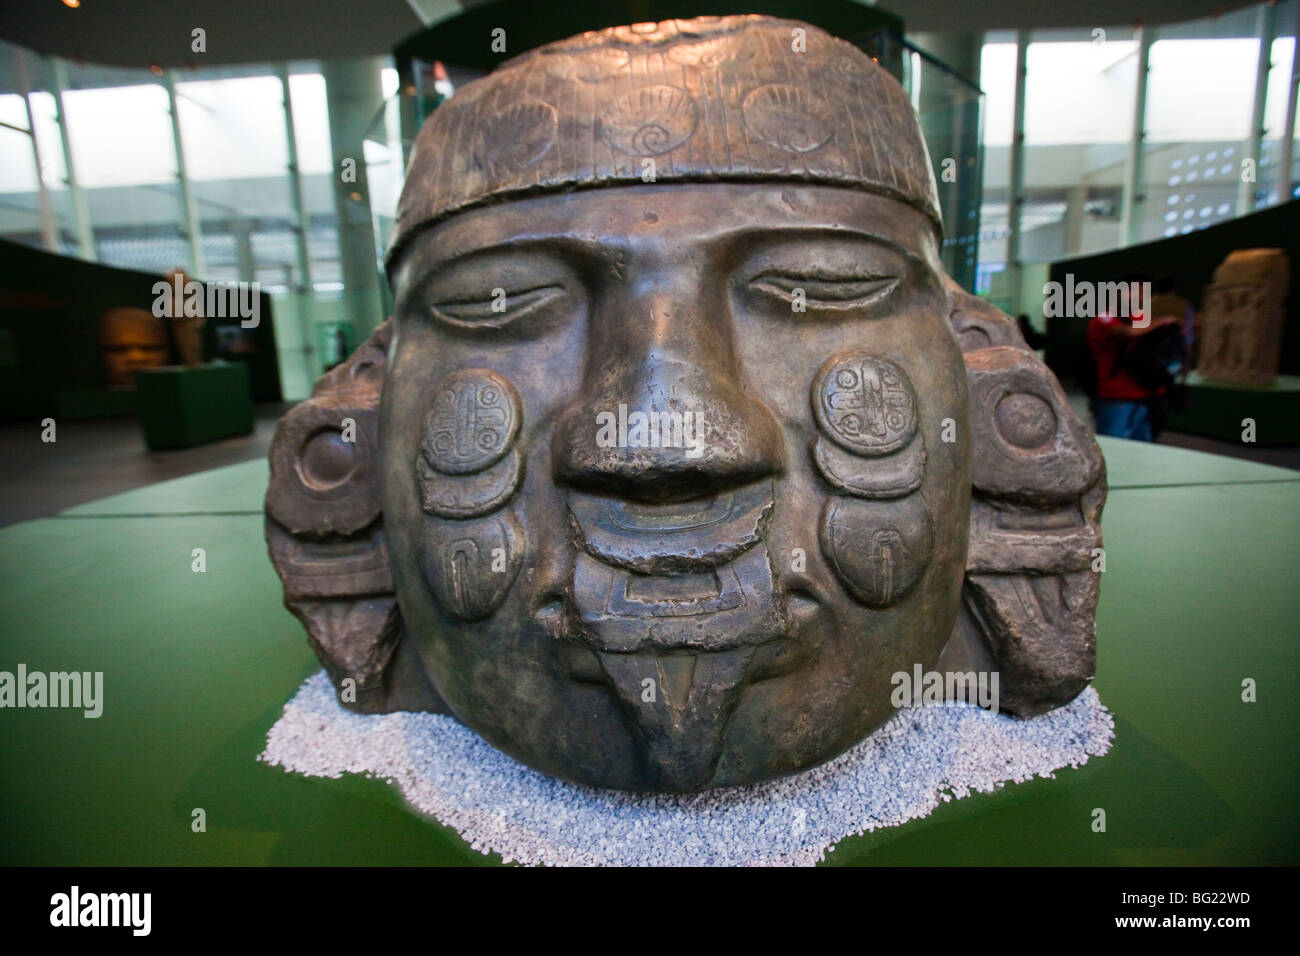 Aztec Colassal Sculpture of Coyolxauhqui National Museum of Anthropology Exhibit in Mexico City - Stock Image